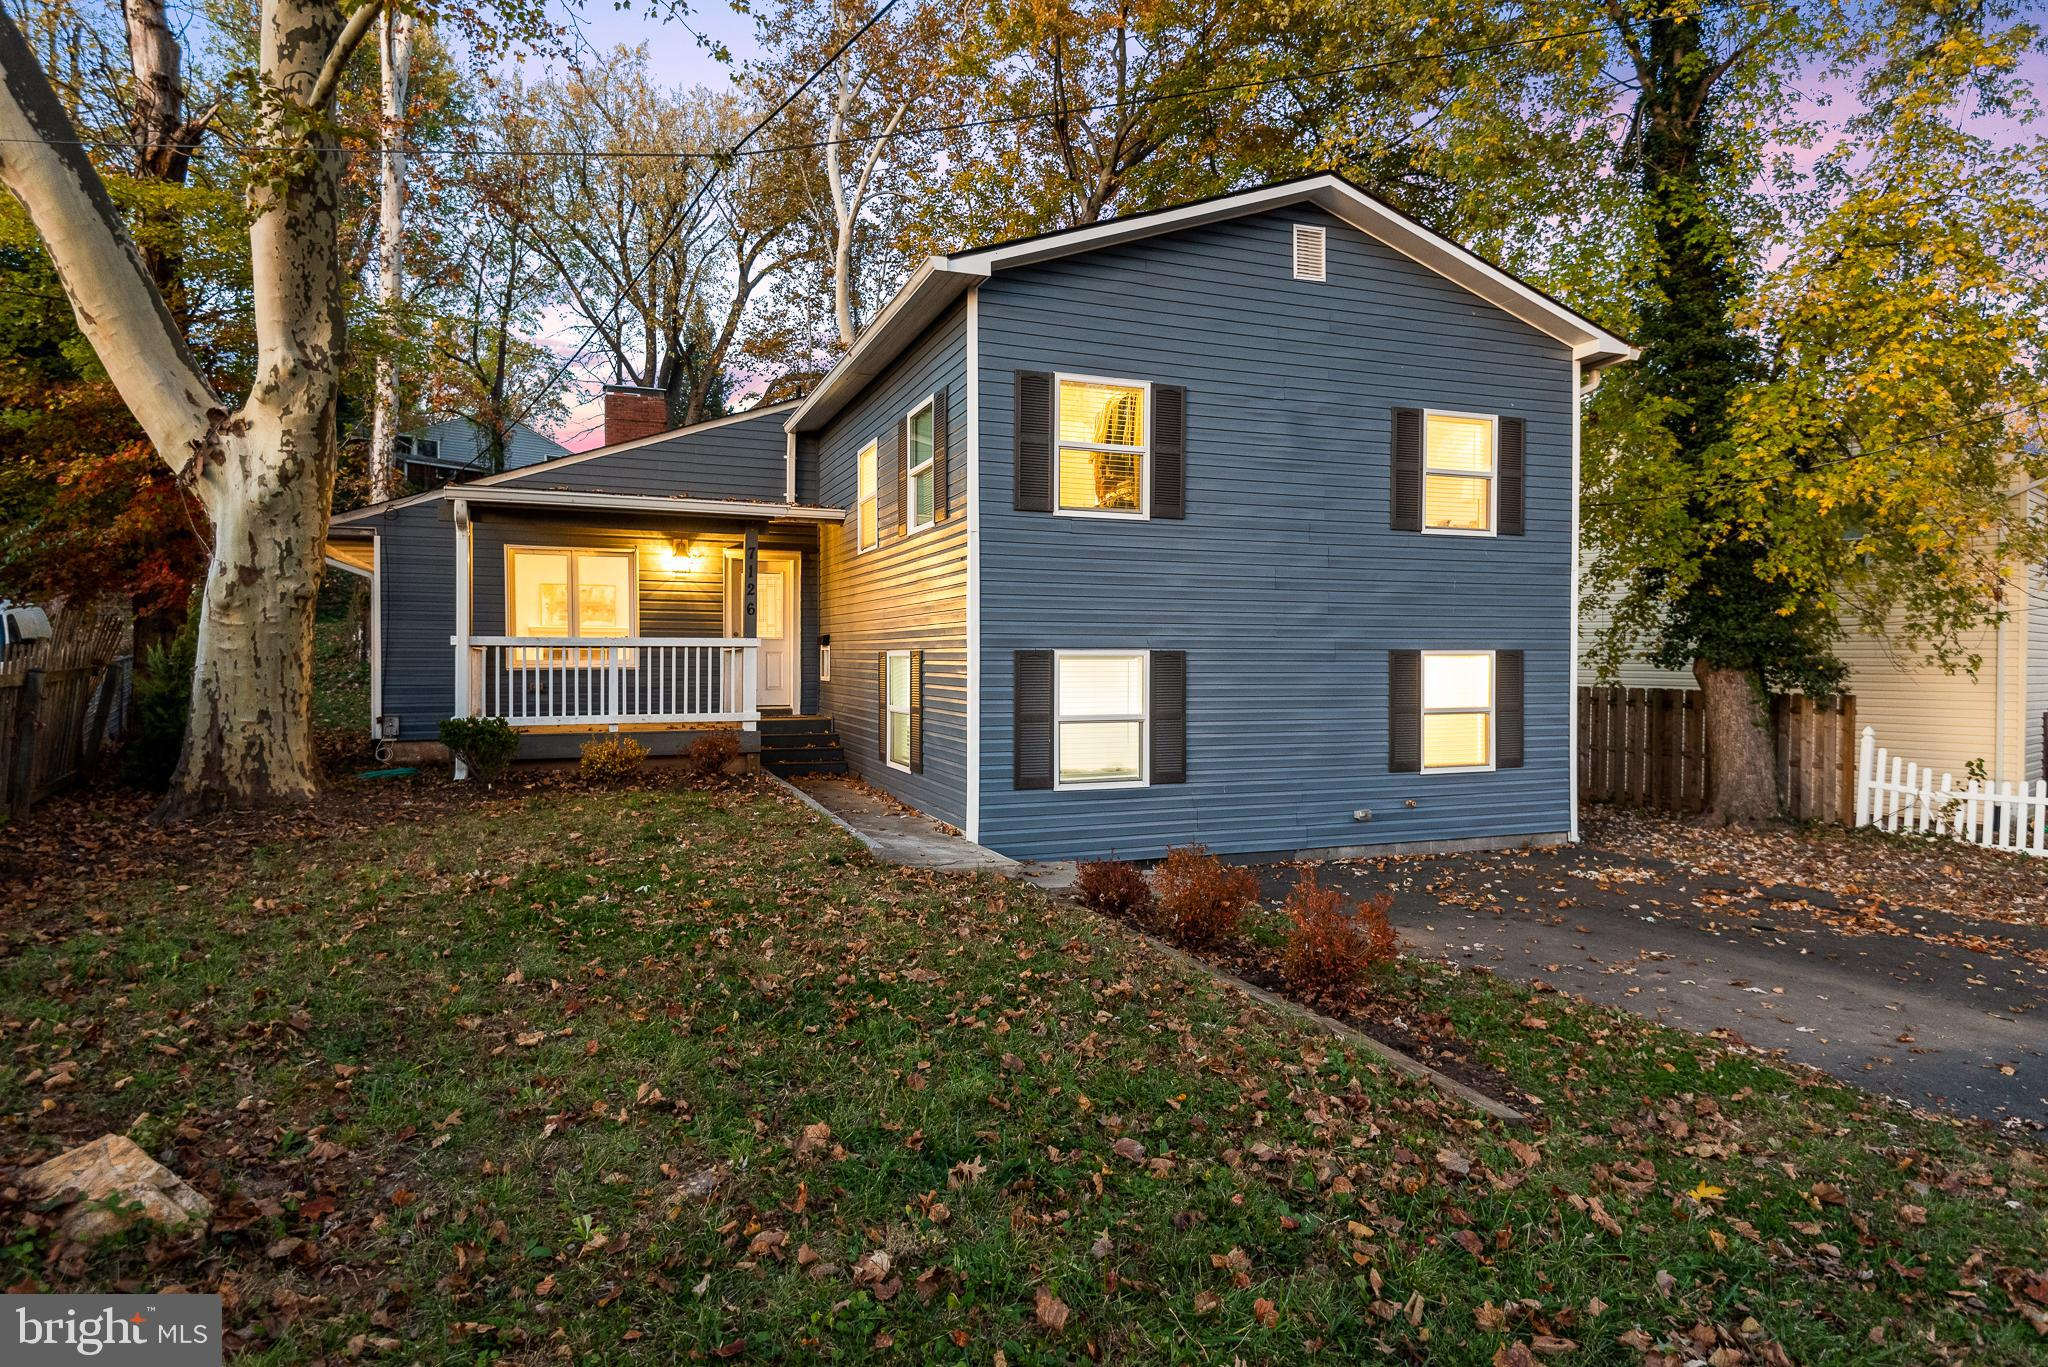 MOVE-IN READY HOME IN SOUGHT-AFTER WOODLEY NORTH WITH MANY UPGRADES! ENJOY AN OPEN FLOOR PLAN WITH T